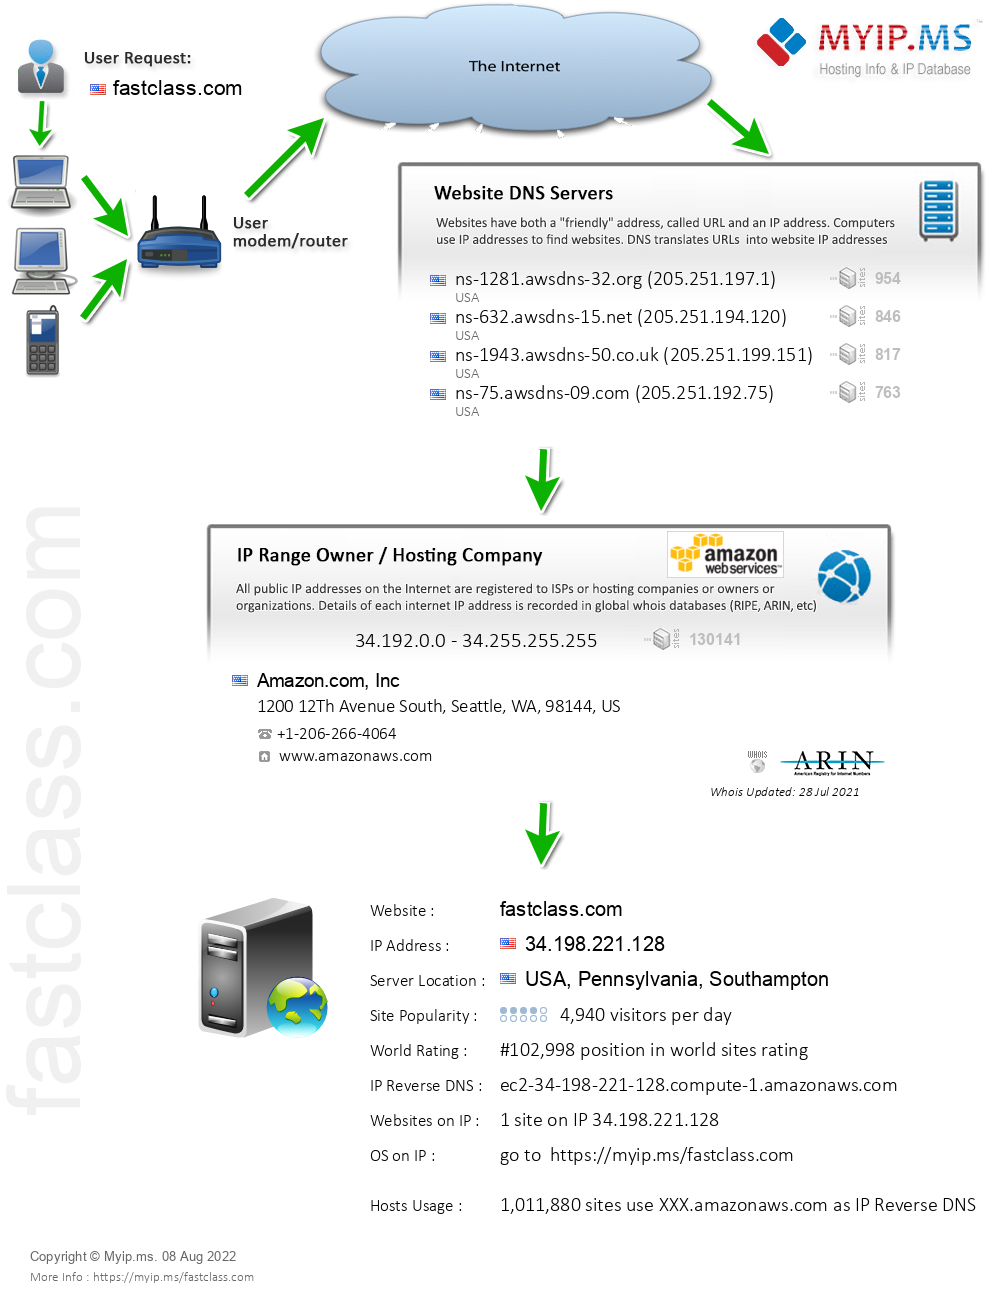 Fastclass.com - Website Hosting Visual IP Diagram